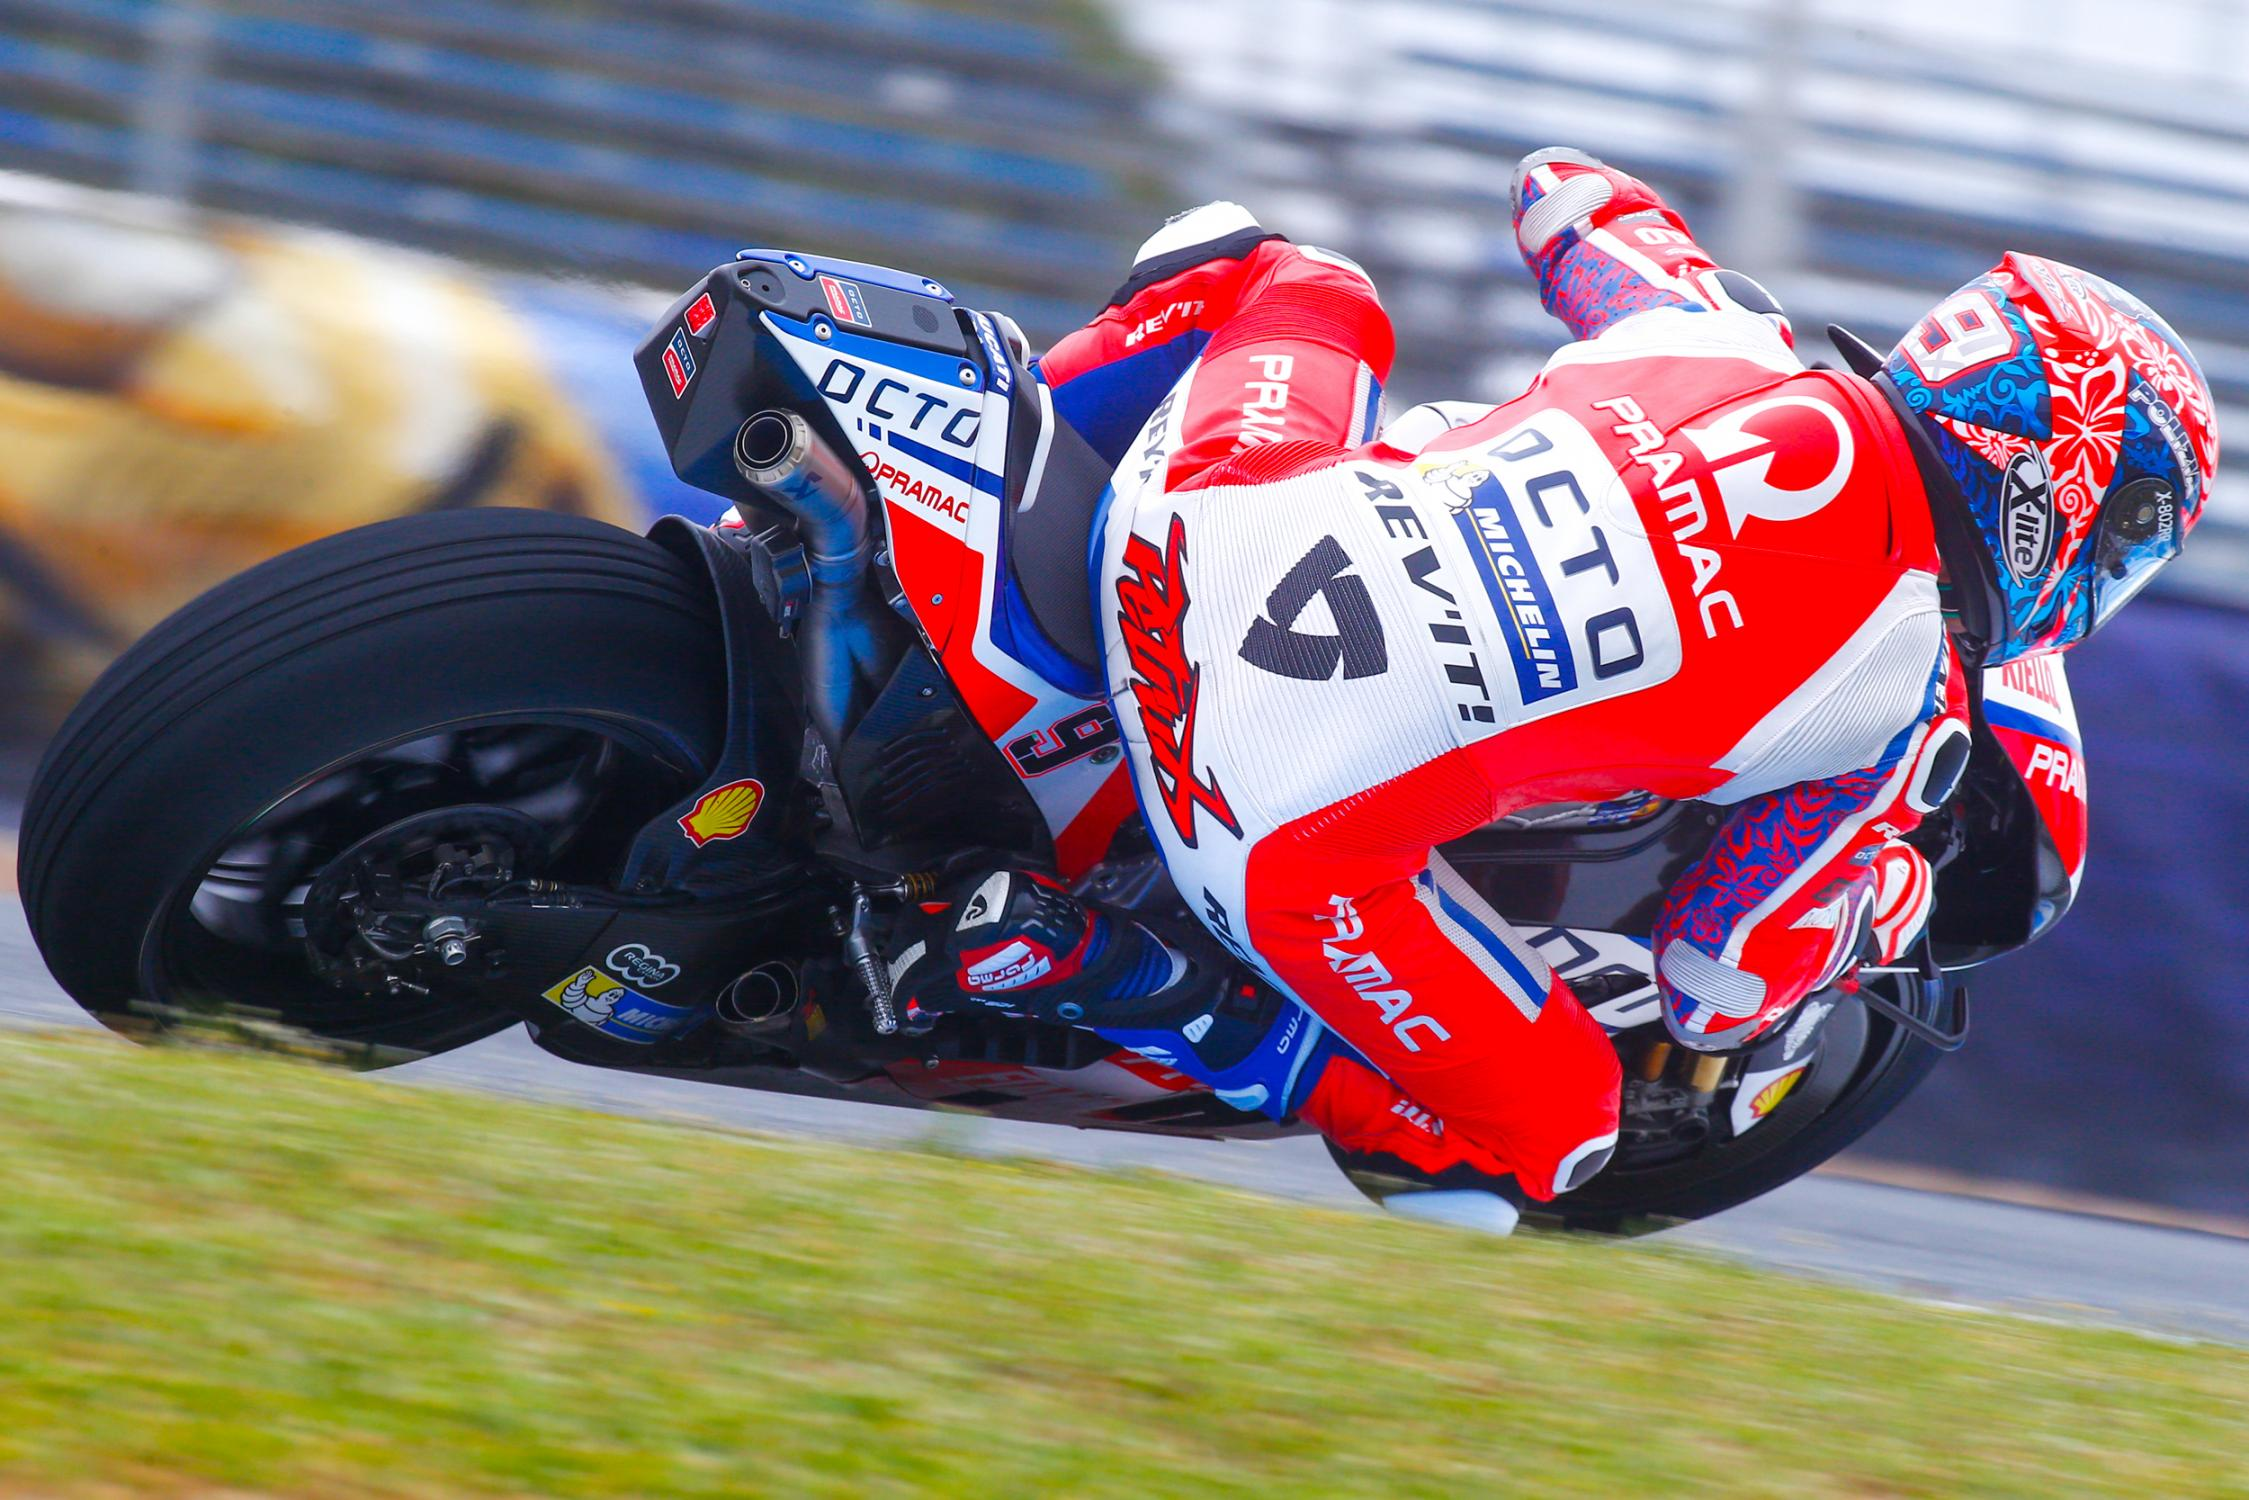 00672_gpjerez_motogp_action.gallery_full_top_fullscreen.jpg